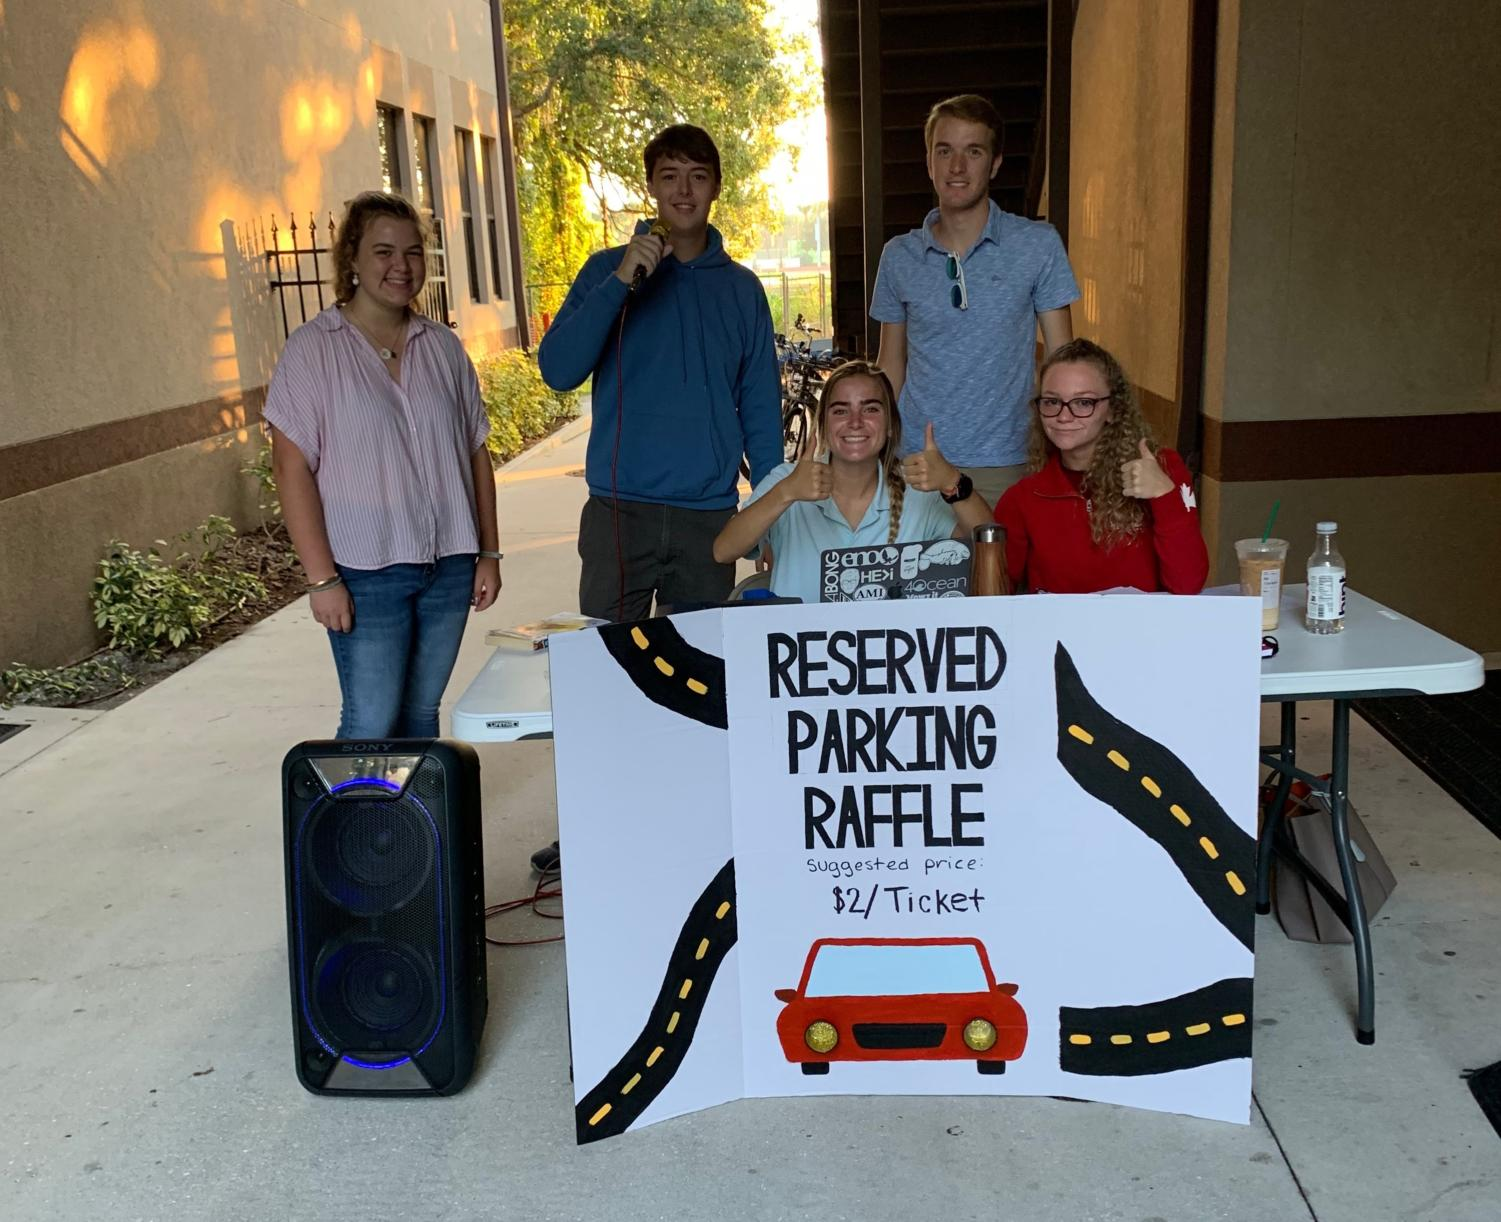 StuCo members outside the Turner Building on Monday, initiating the Reserved Parking Spot fundraiser.